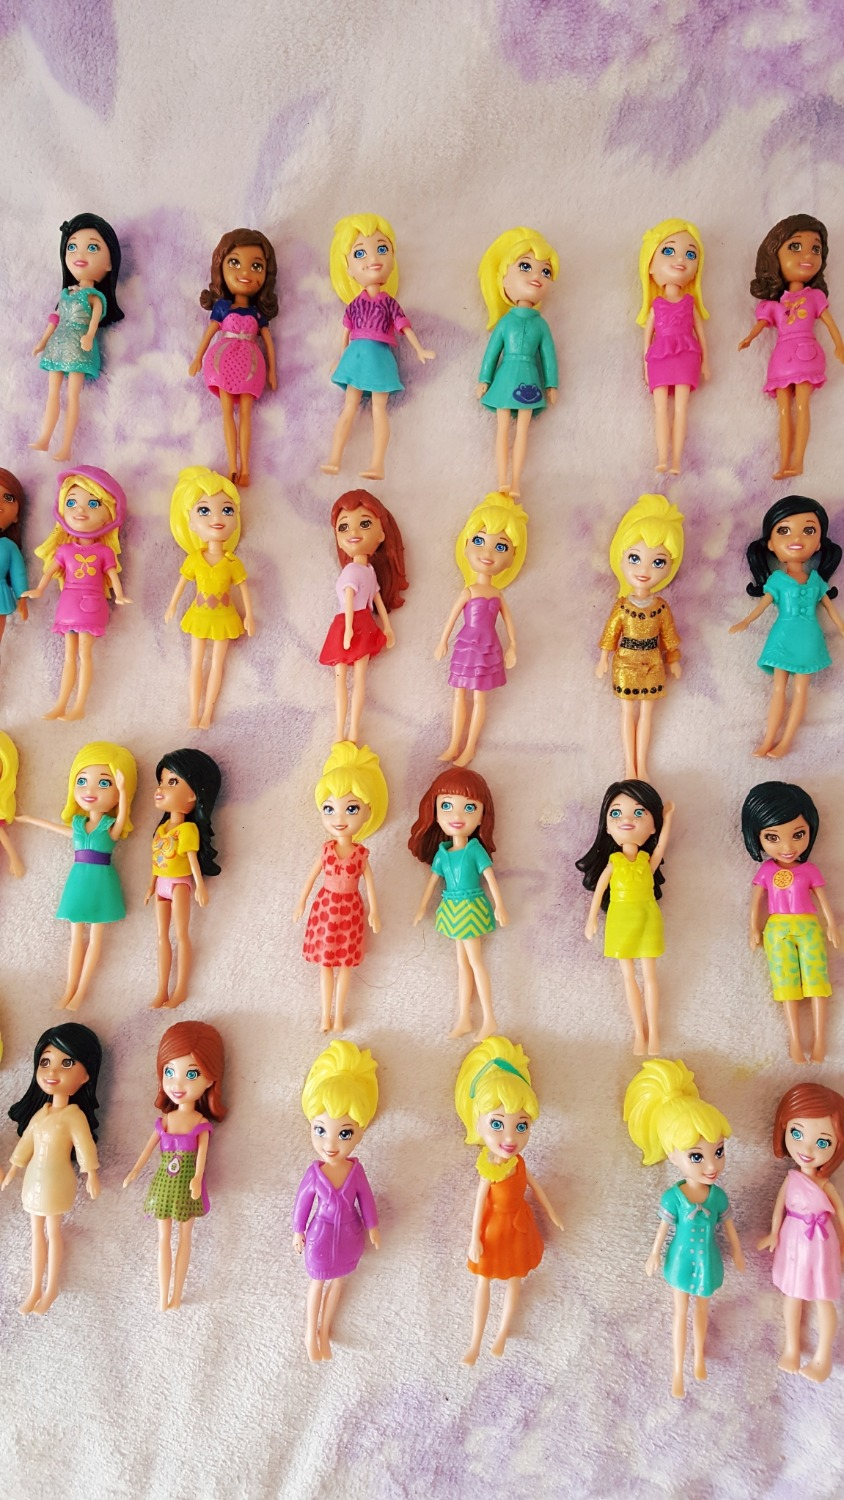 Aliexpress Com Buy Vinyl American Princess 45cm Dolls: Online Get Cheap Doll Polly -Aliexpress.com